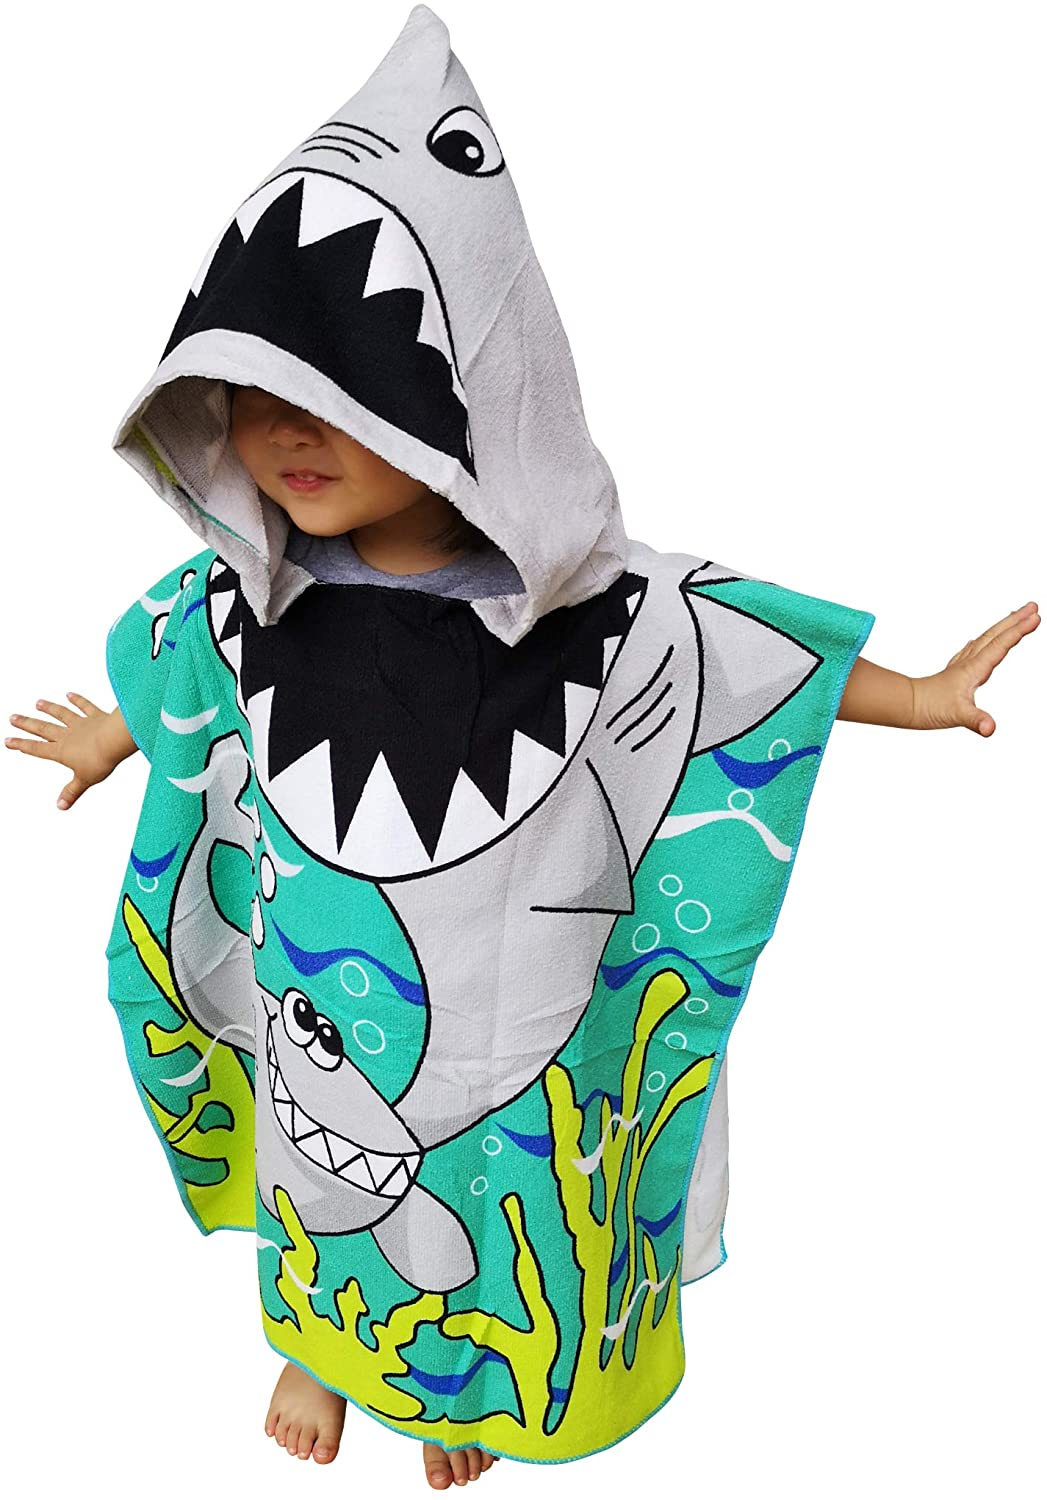 Athaelay Kids Hooded Poncho Towel with Bright Shark for Bath Pool Beach Times, Soft Quick Drying Microfiber